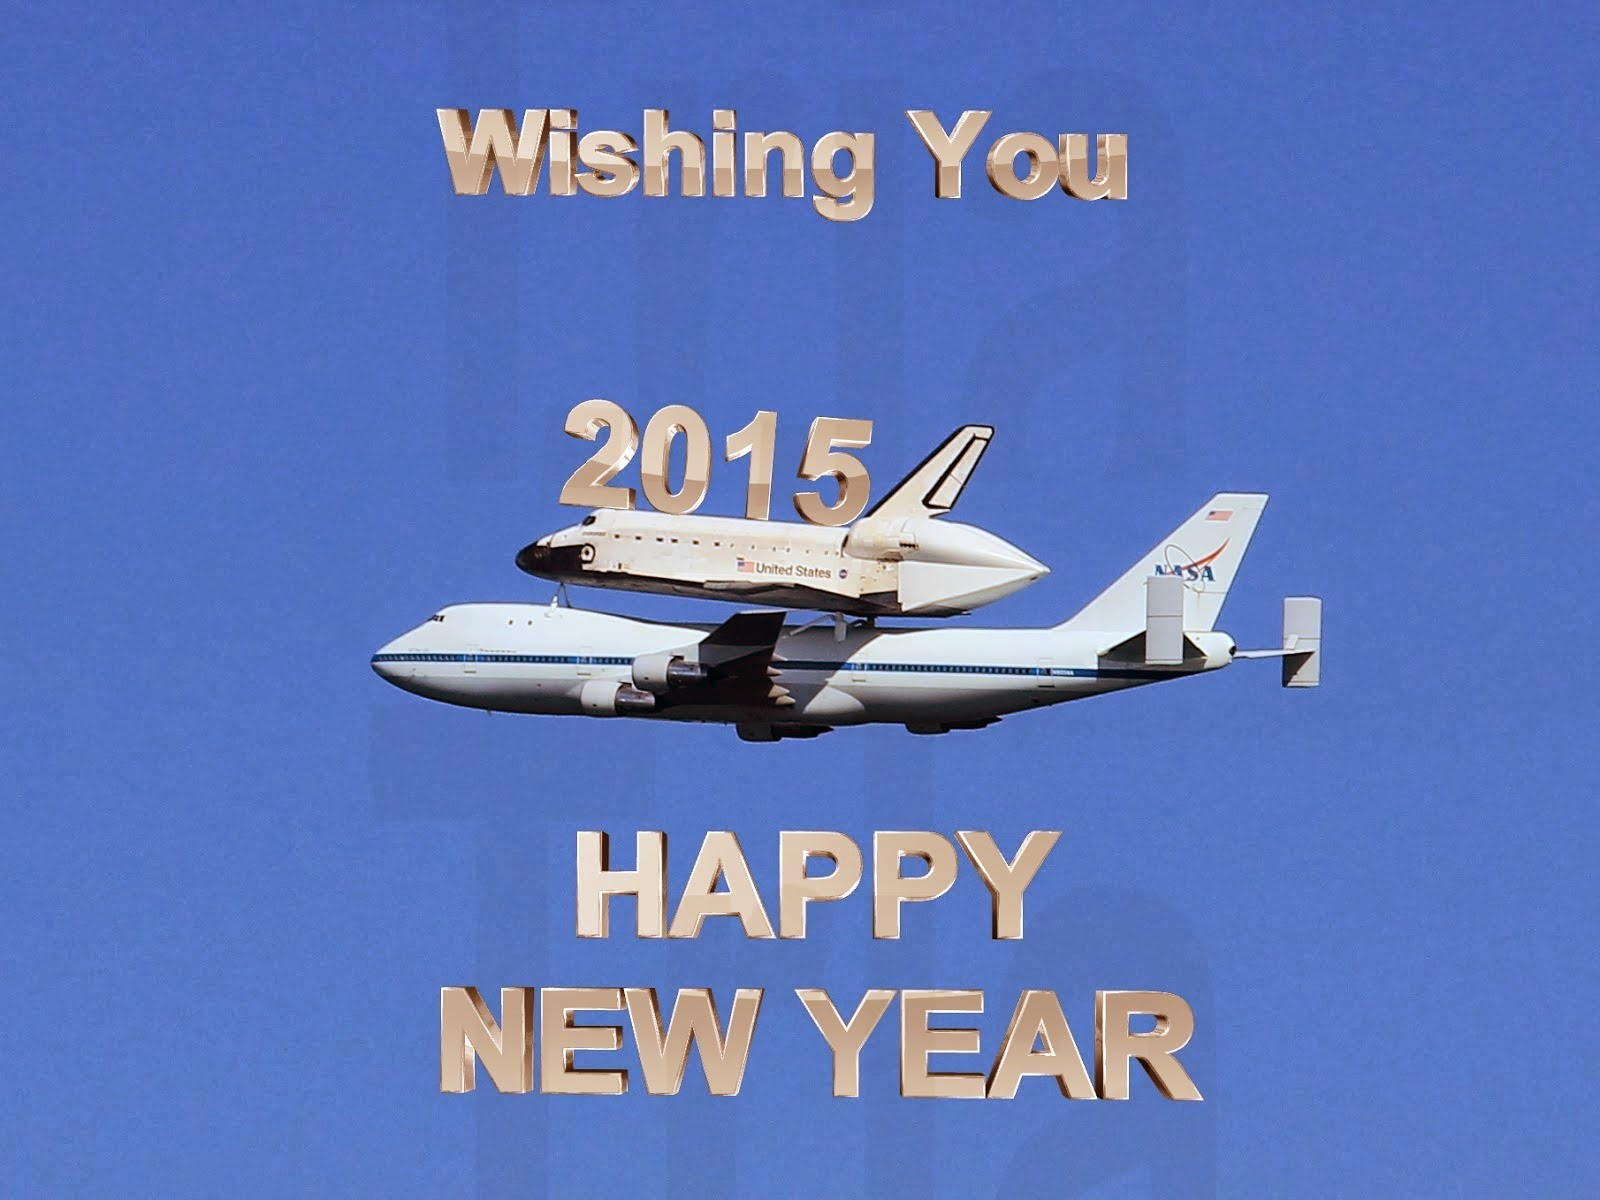 Happy New Year 2015 Wishing Wallpaper Free Dowanloading